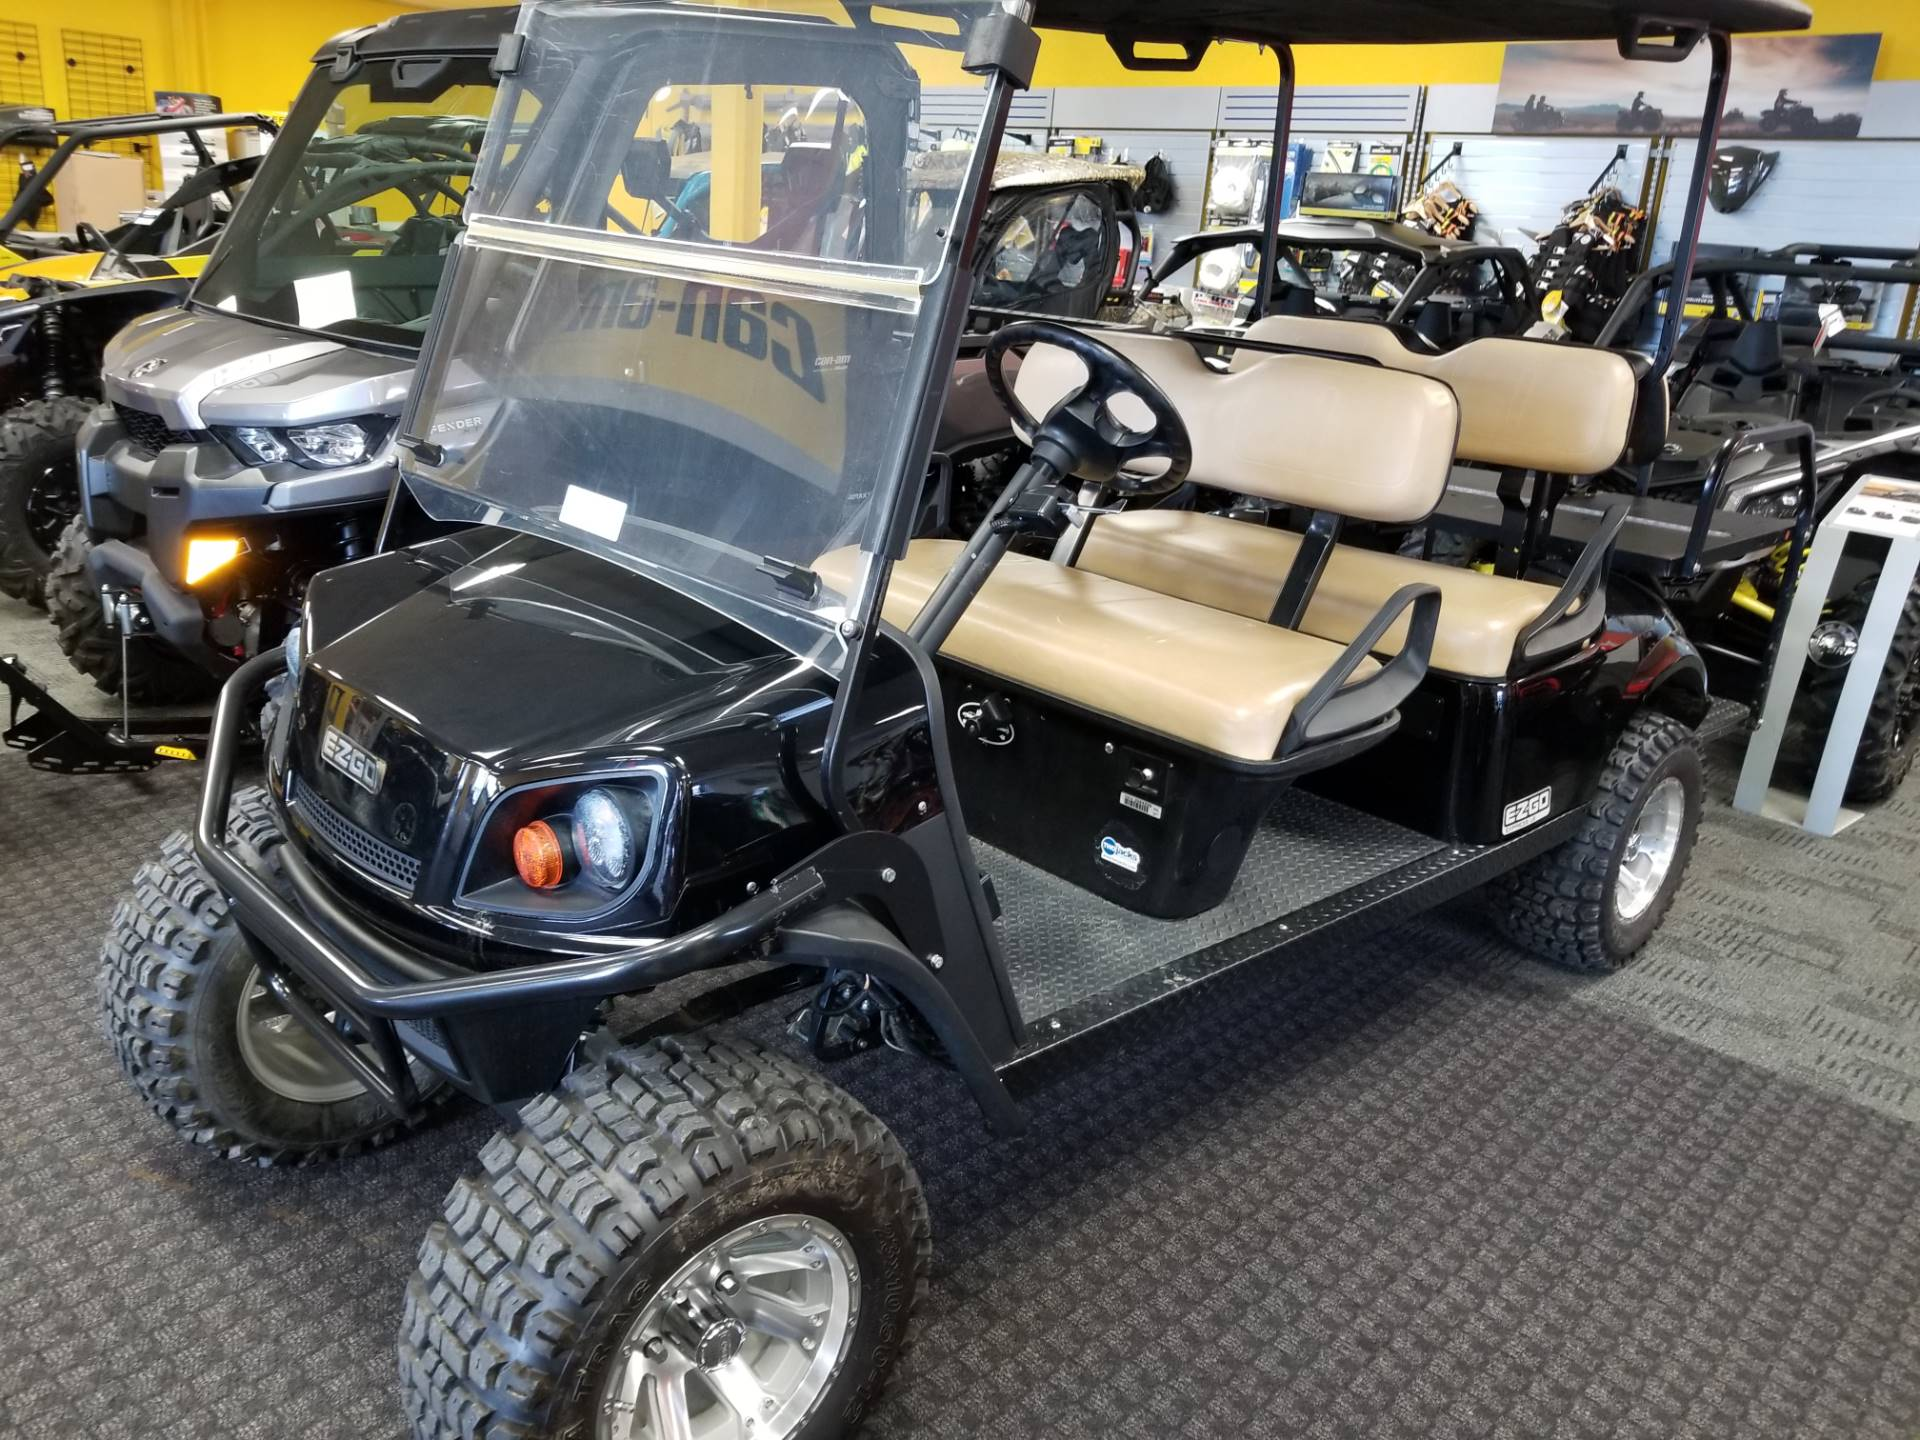 Ezgo Golf Cart Oil Capacity Unique Put Spring In Your Gas Talkgolfcarcatalog Blog on